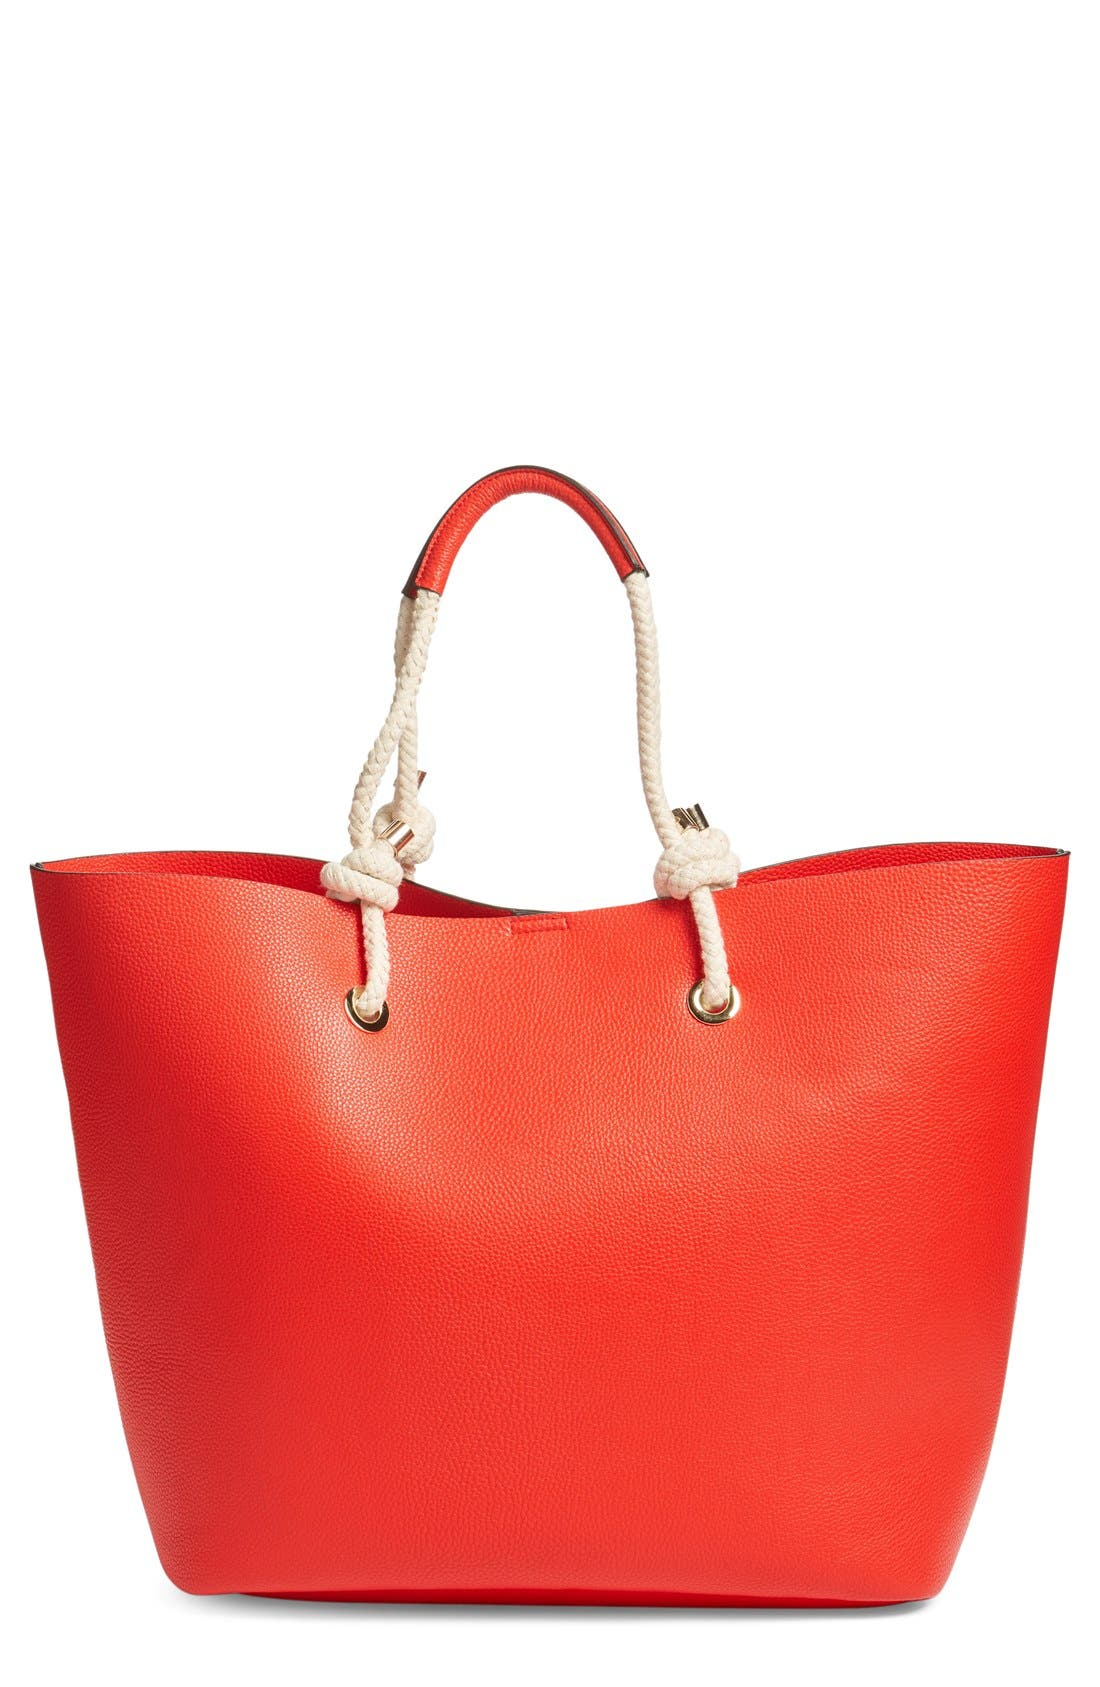 Phase 3 Rope Handle Faux Leather Tote